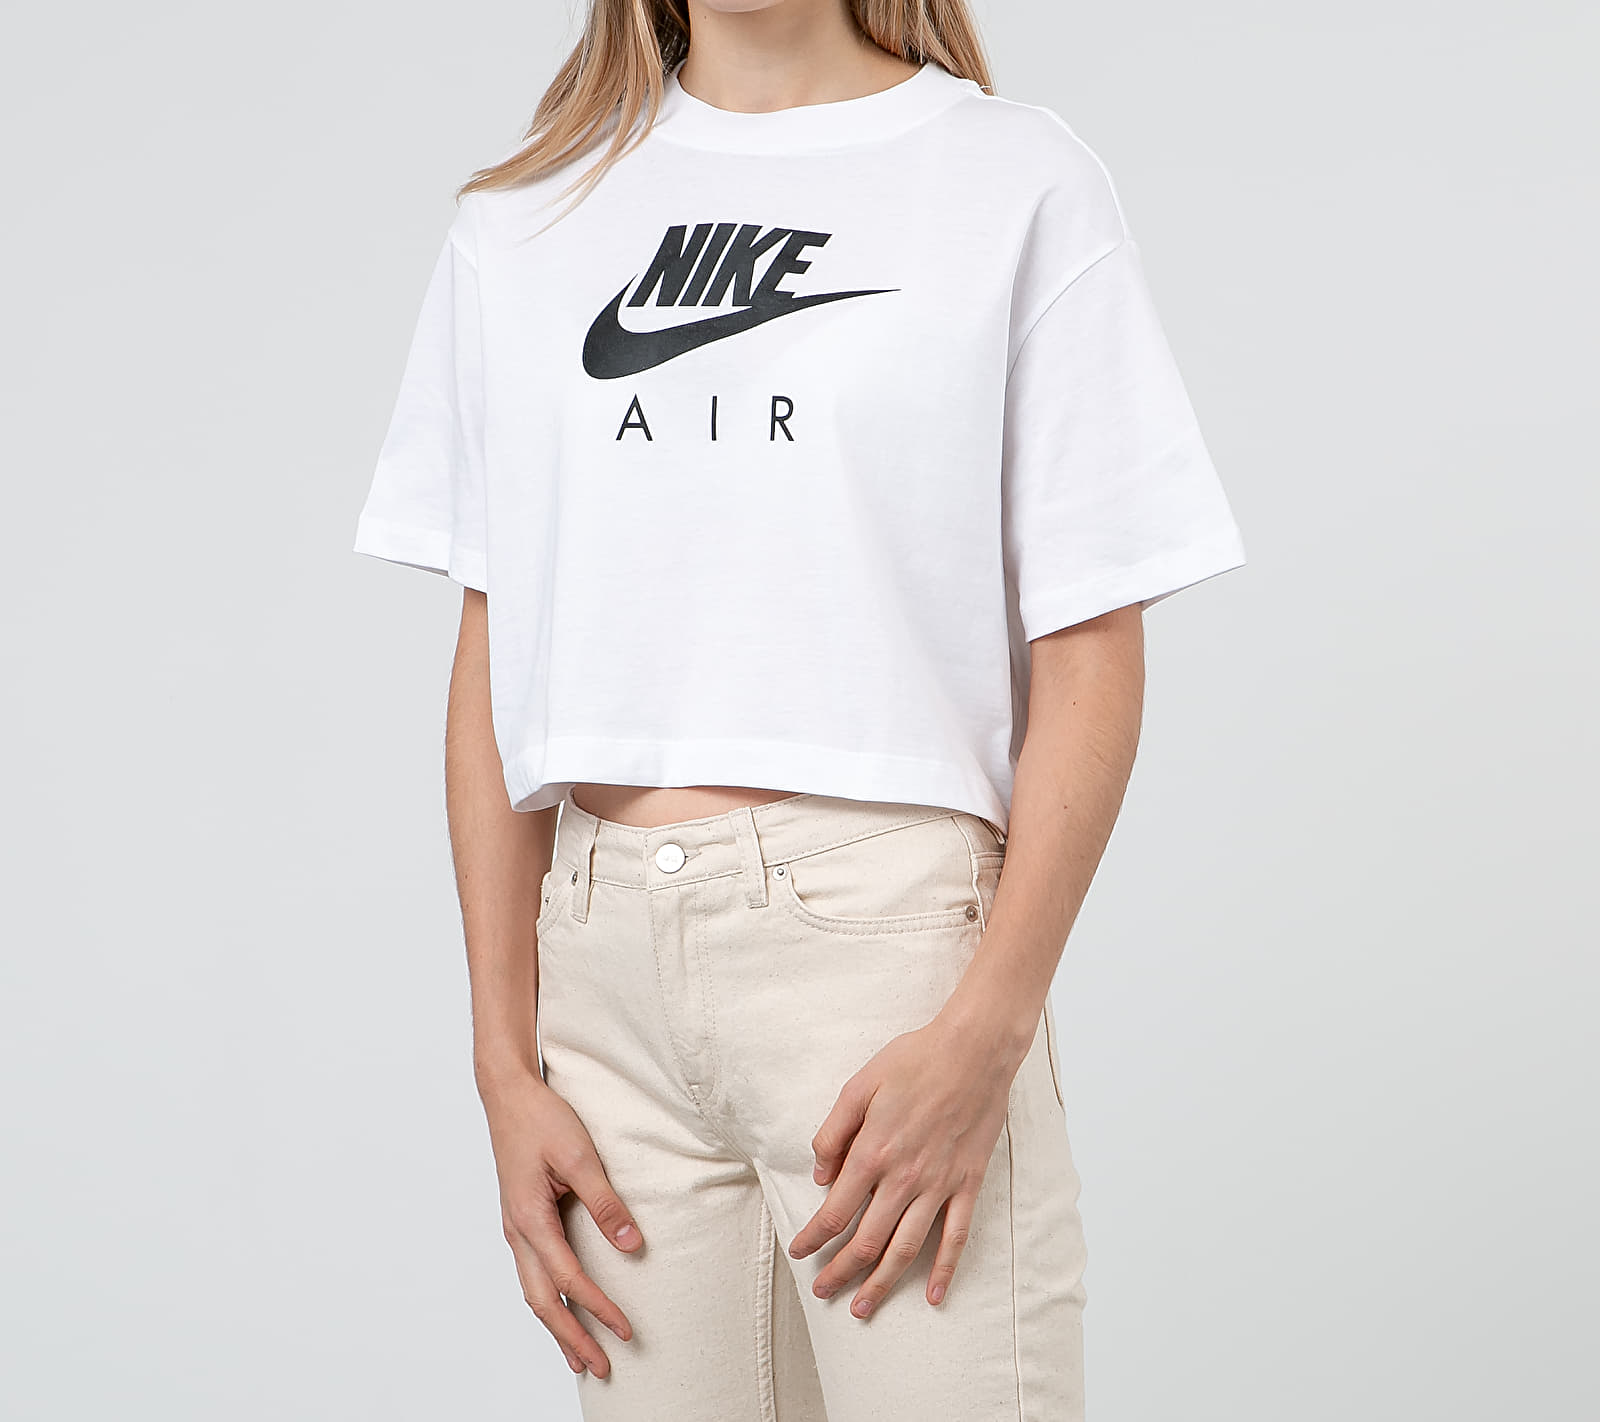 Nike Sportswear Air Top White M